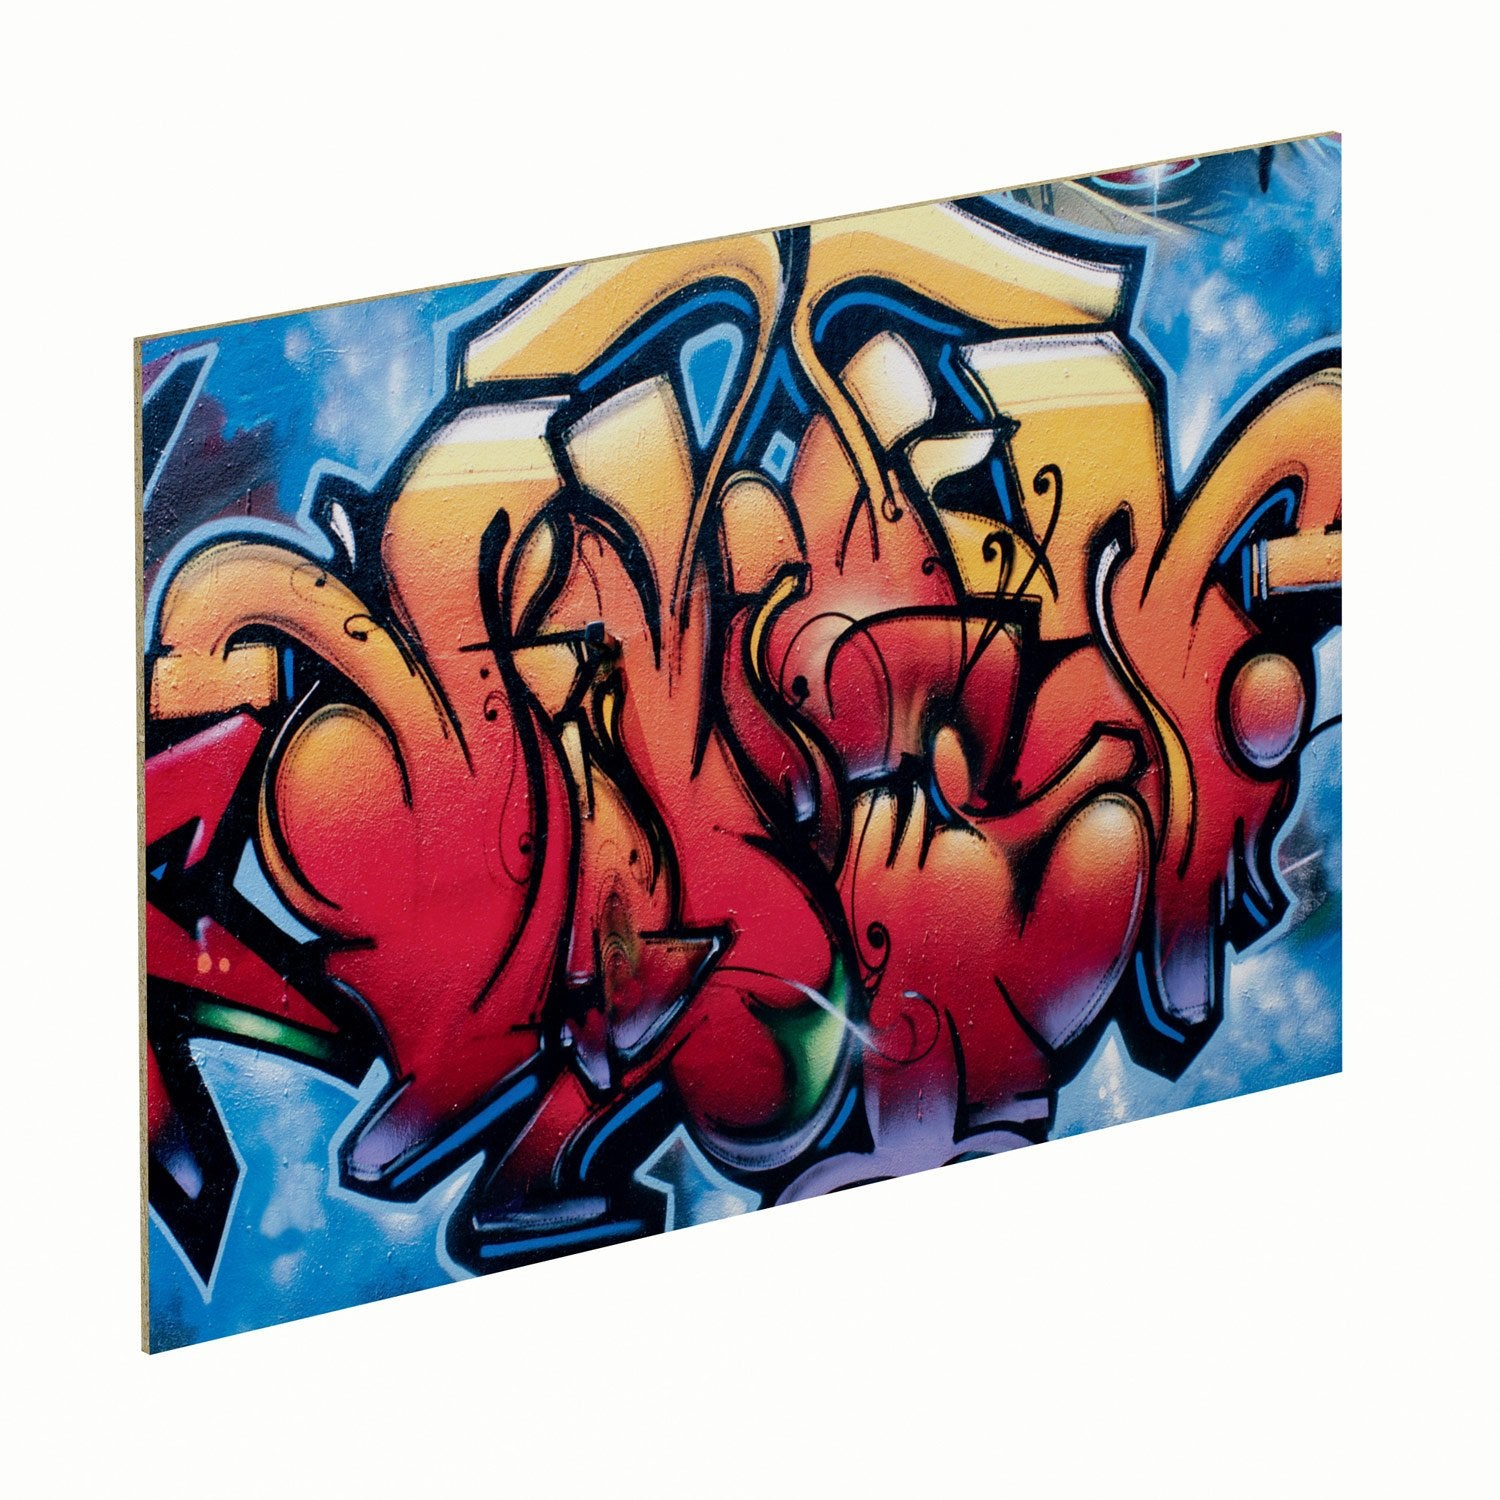 Panneau glossy graffiti spaceo leroy merlin - Graffiti leroy merlin behang ...